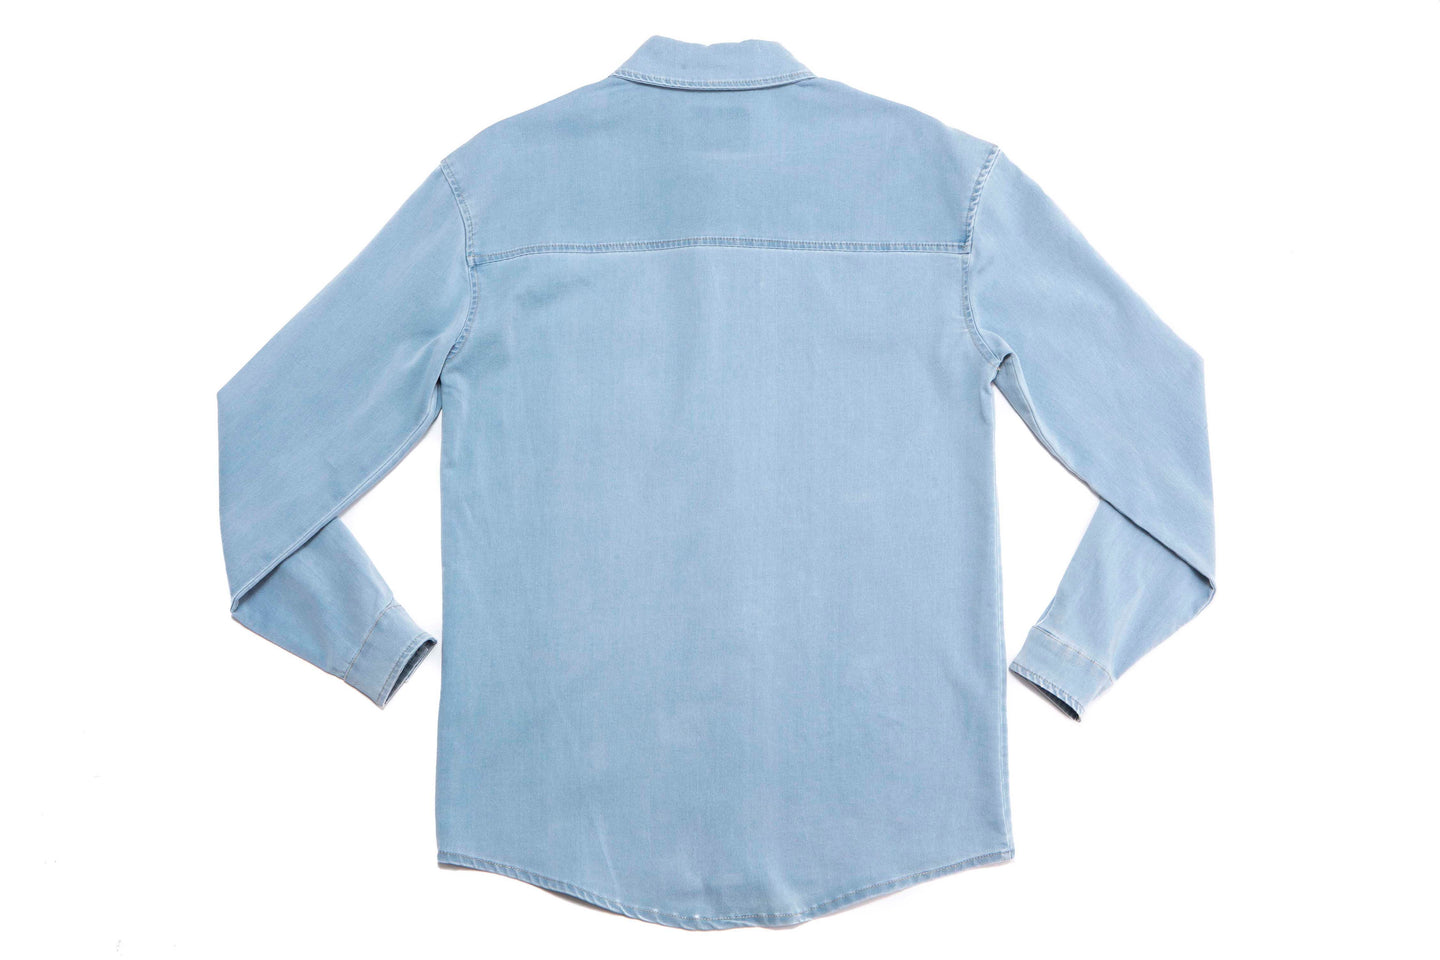 SERENITY DENIM SHIRT